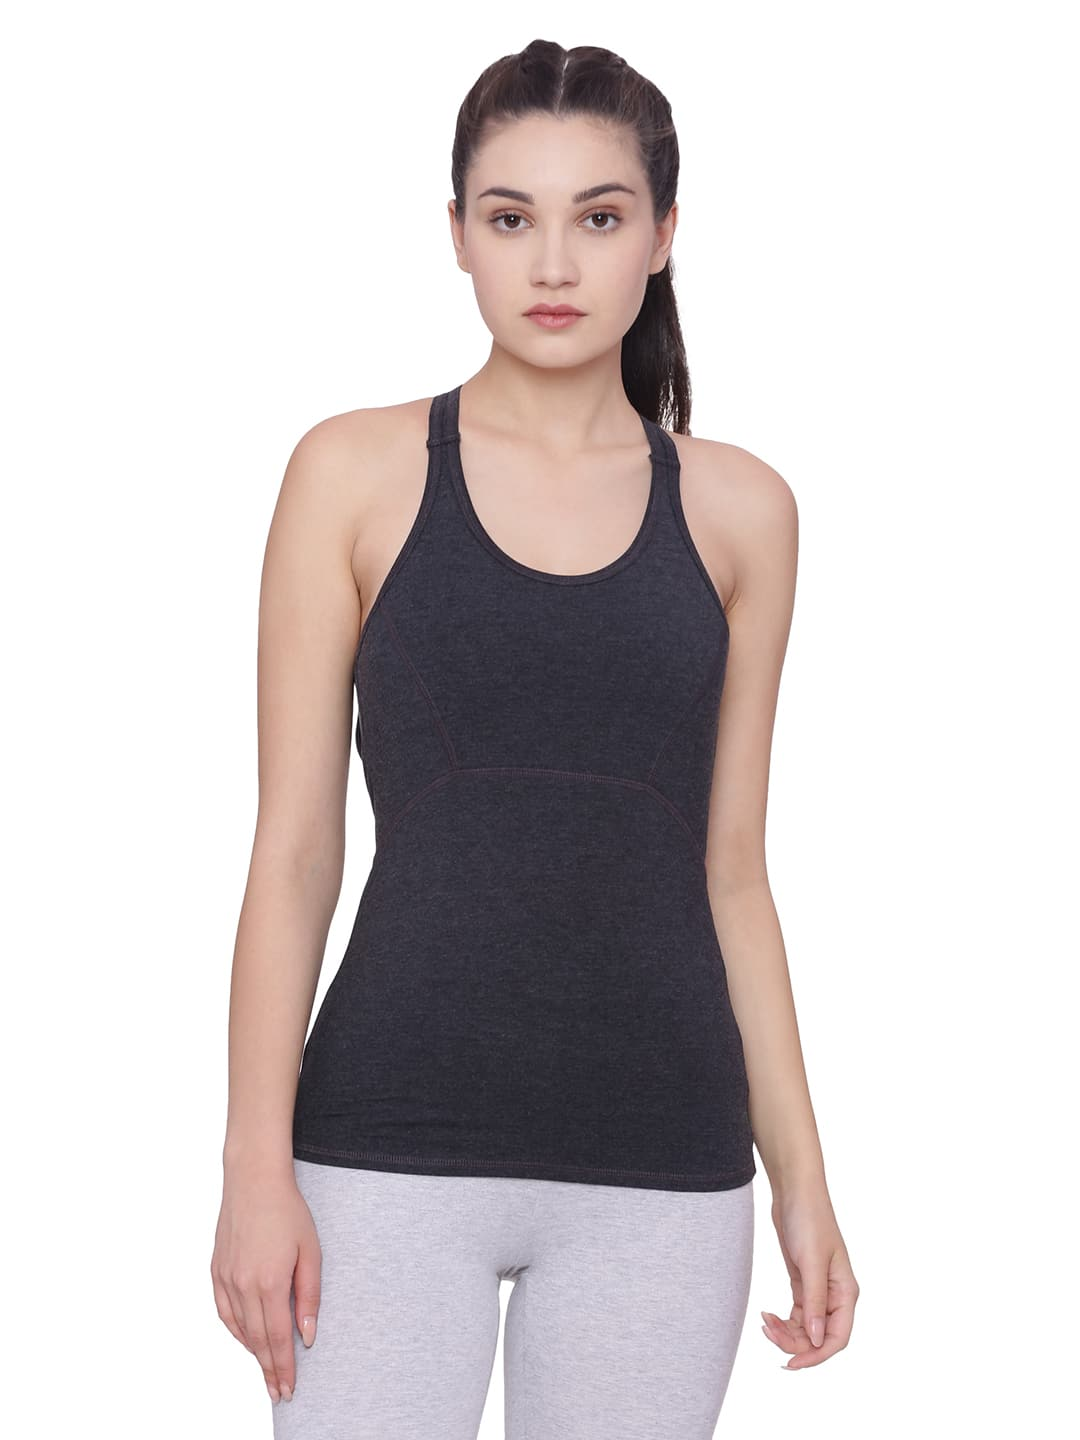 Super Comfortable and soft organic cotton Tank Bra Colour Anthra Melange Size XL